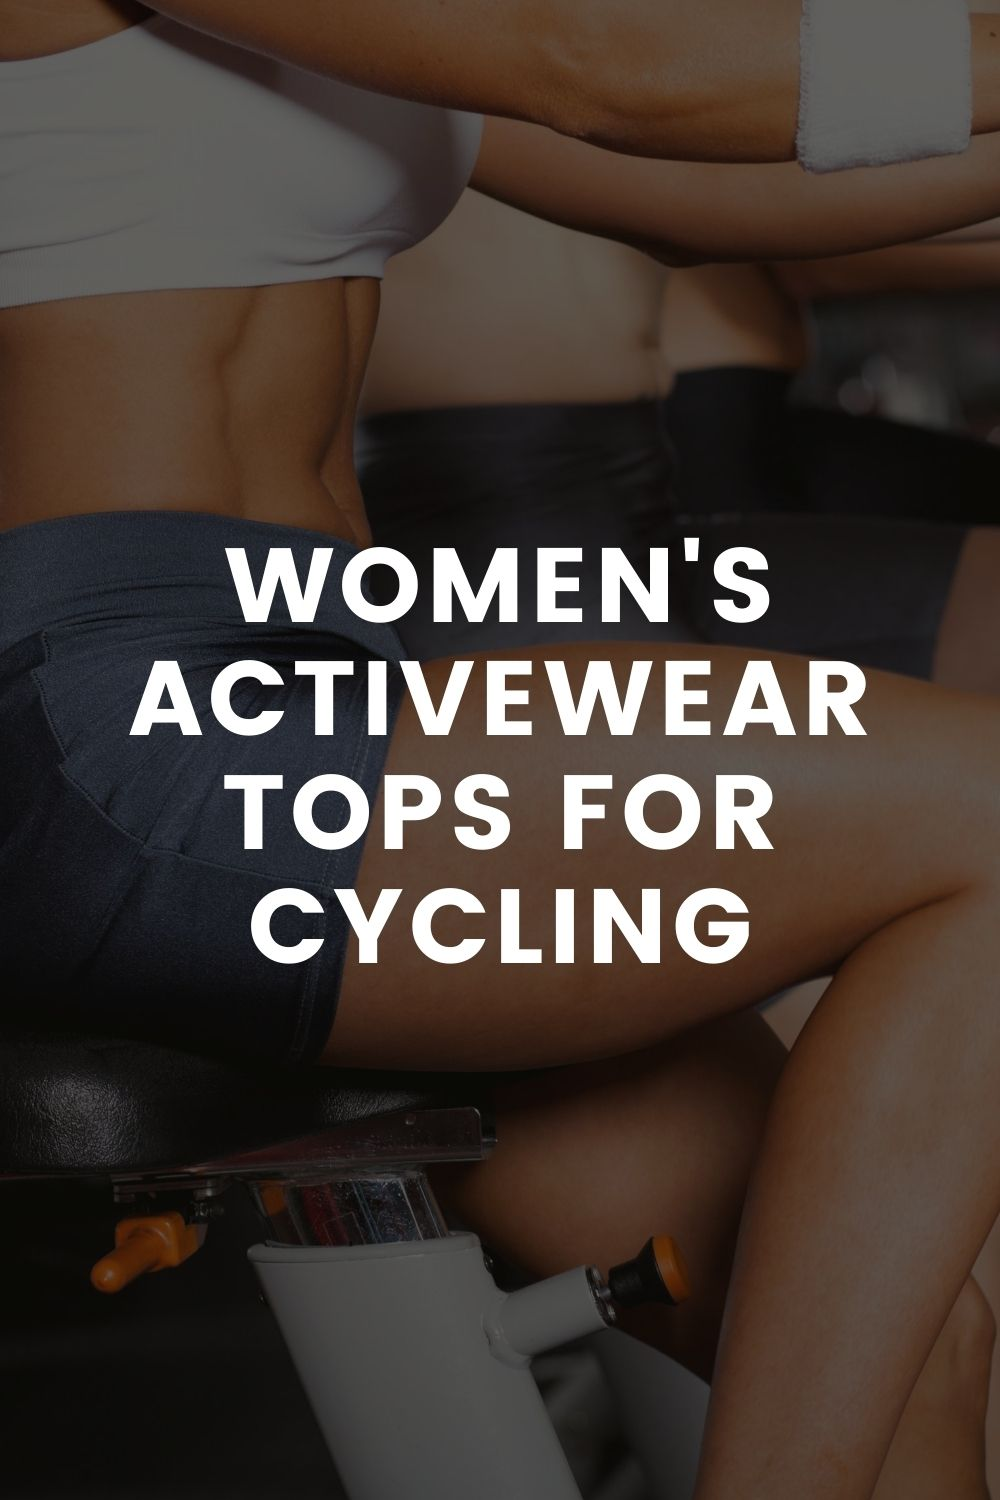 Women's Activewear Tops for Cycling